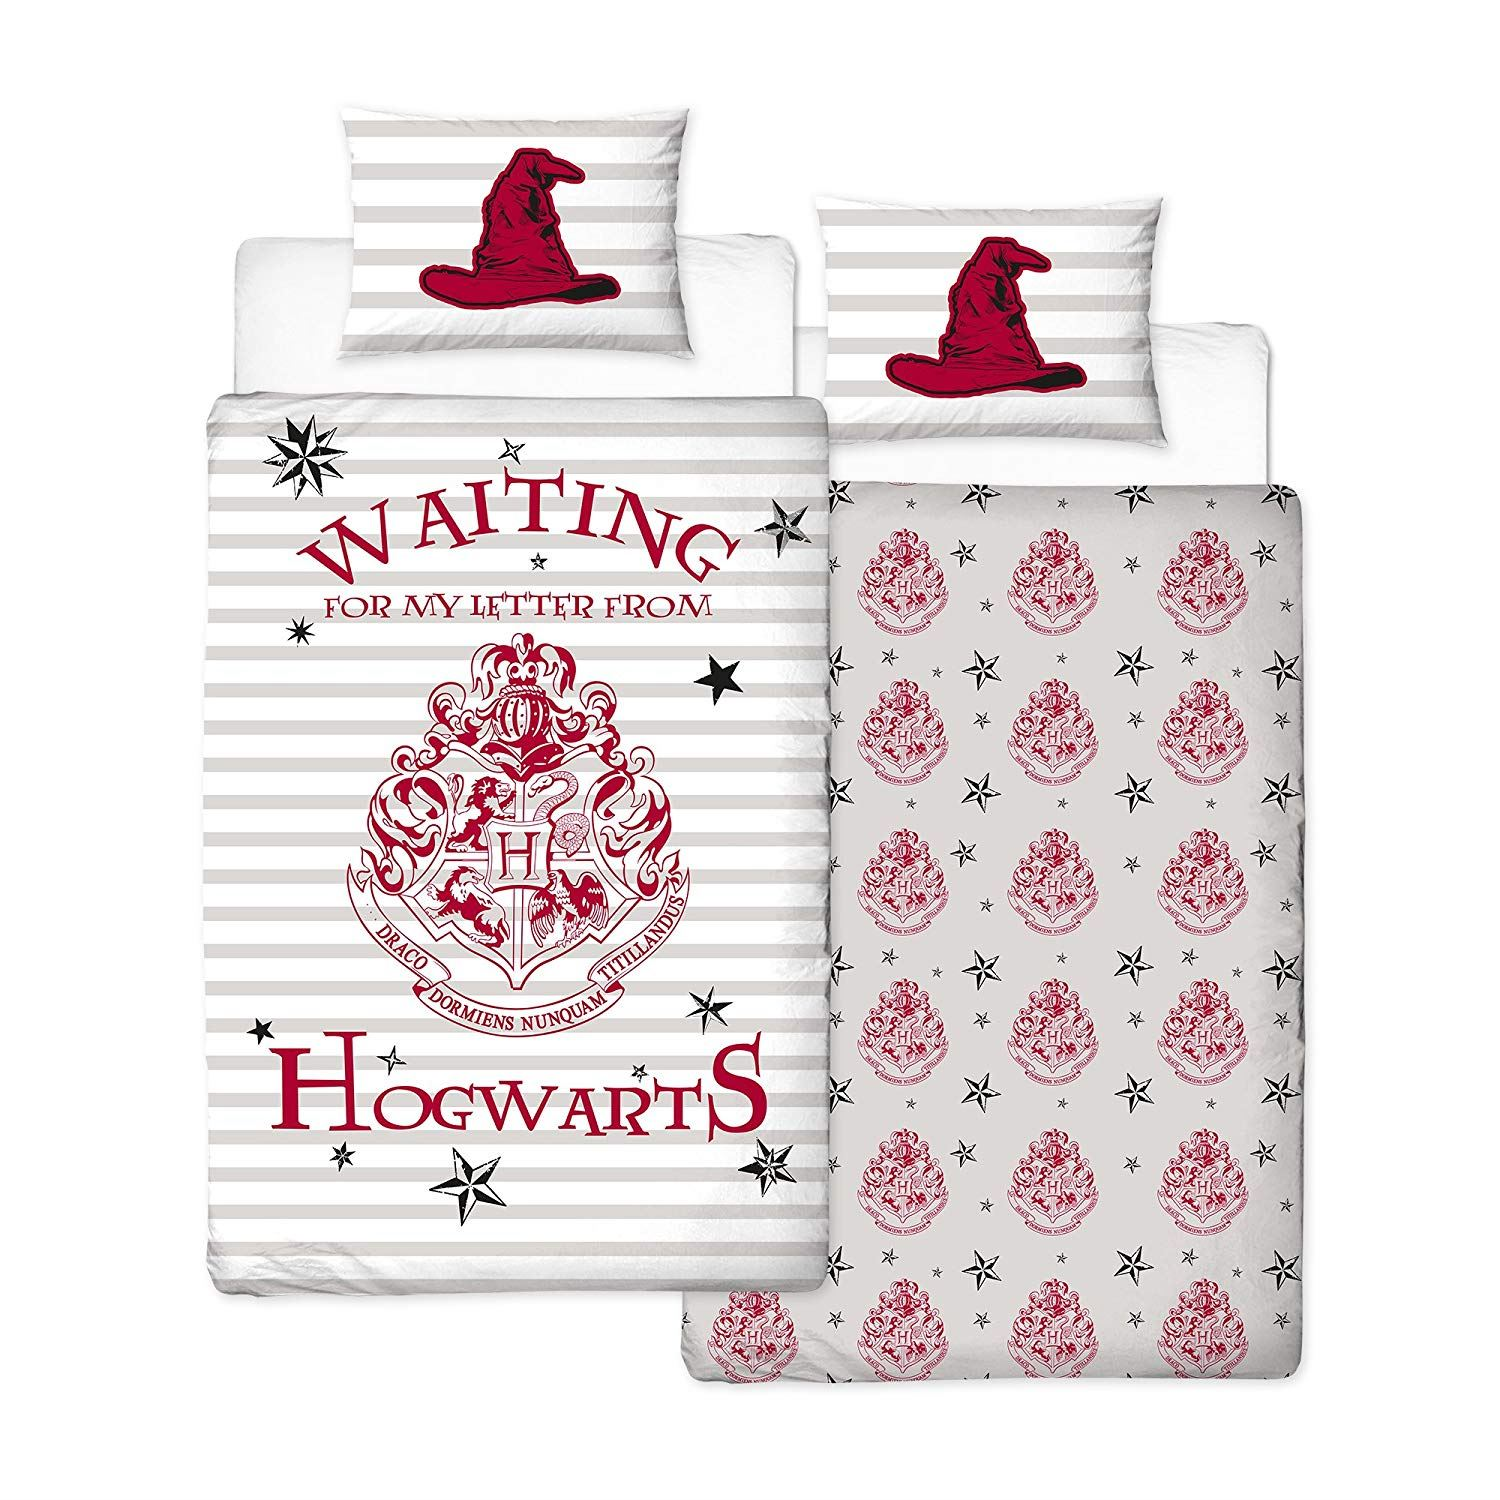 Official-Harry-Potter-Licensed-Duvet-Covers-Single-Double-Muggles-Hogwarts-Charm thumbnail 24